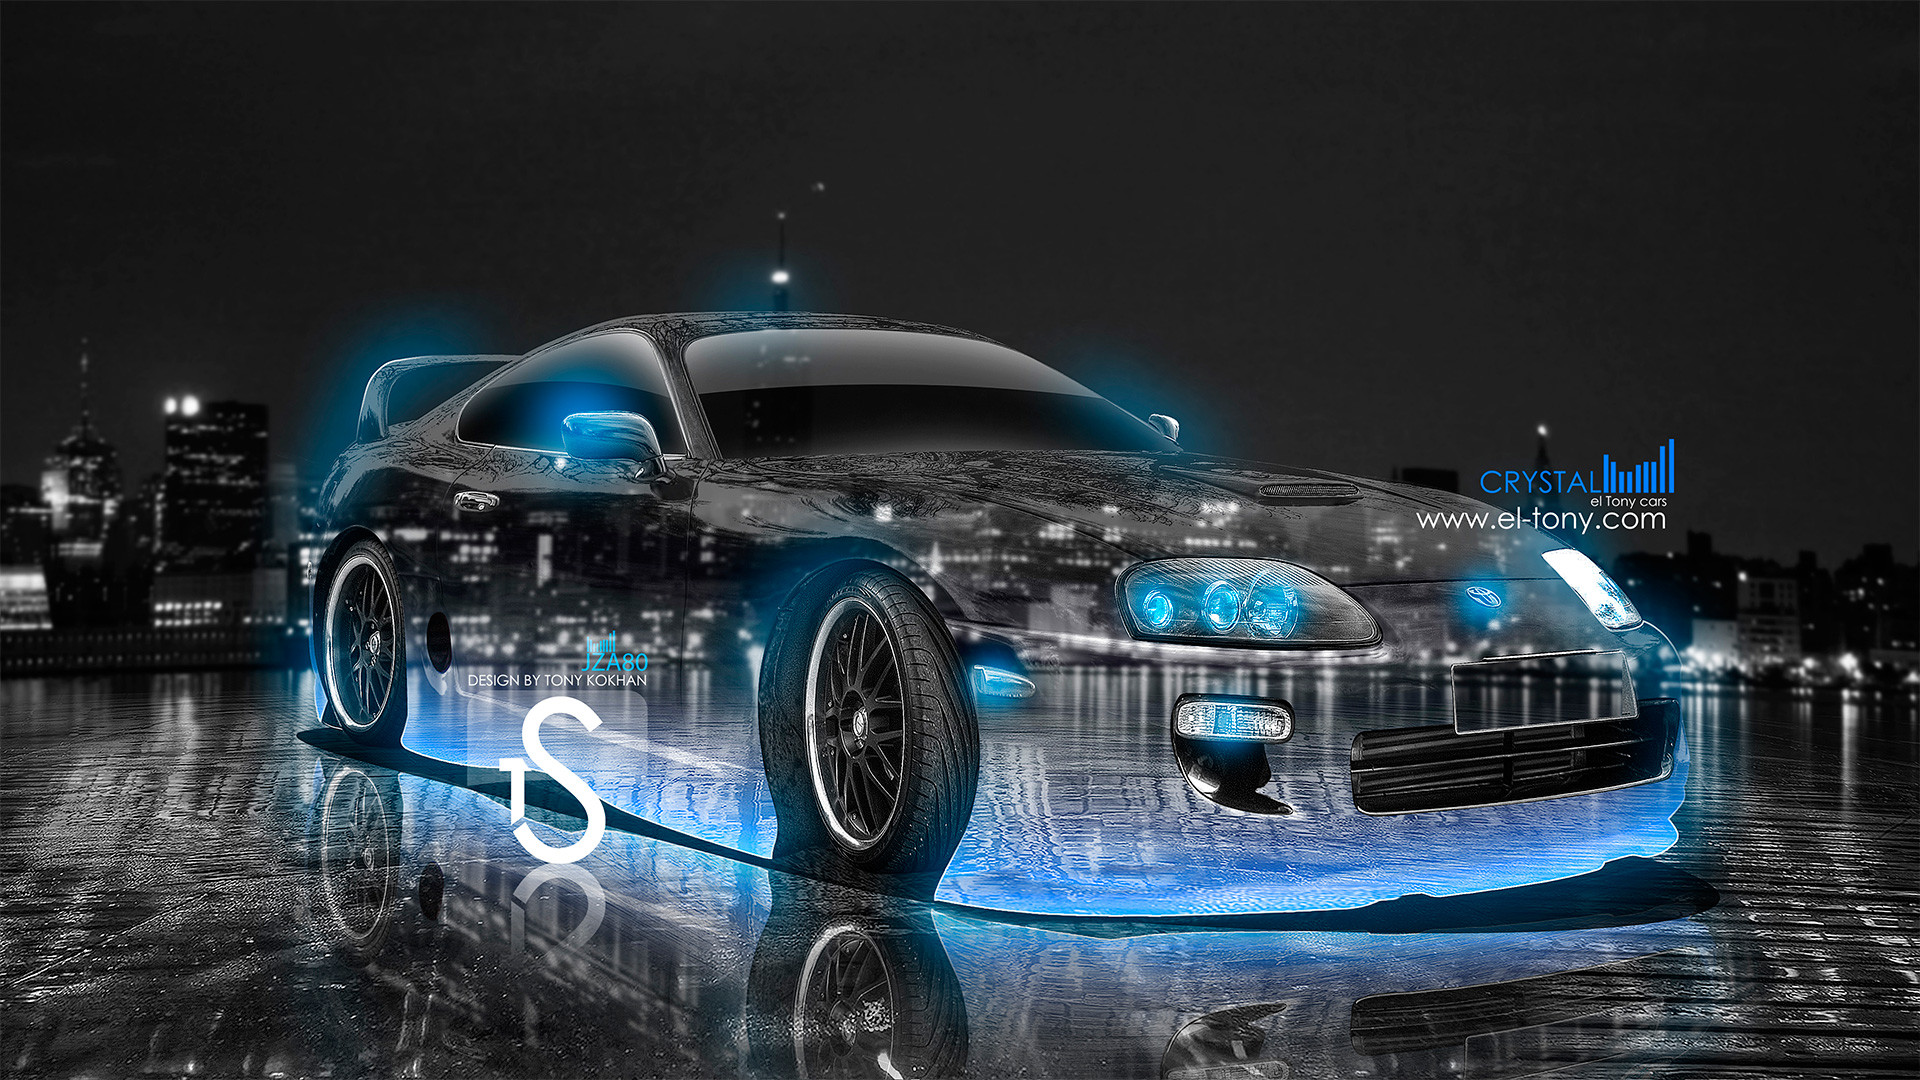 1920x1080 NFS: Out Of The Law Wallpaper   Other Games   Games   Wallpaper  .. Cars With Neon Lights. Cool Car Wallpapers_car Wallpaper_download .